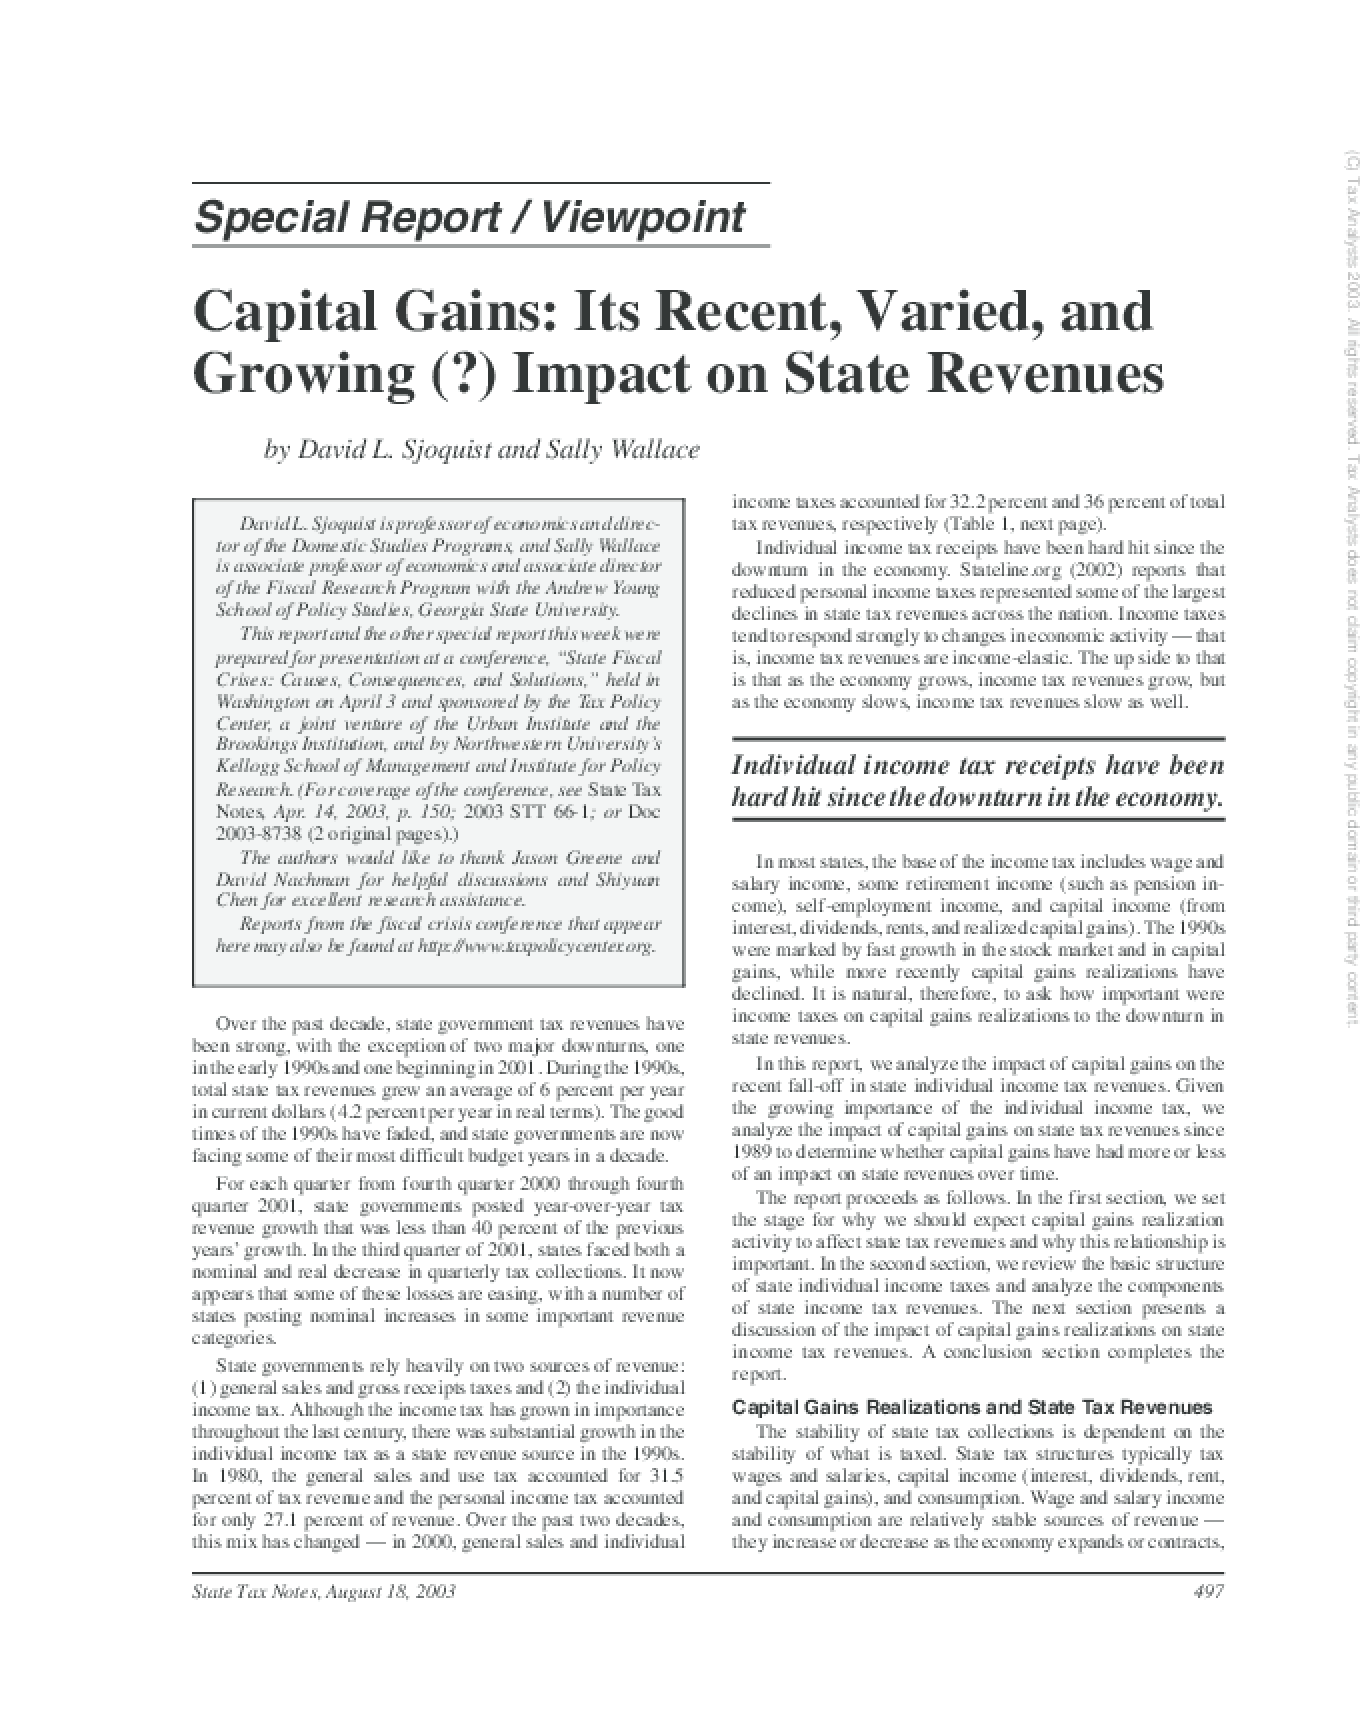 Capital Gains: Its Recent, Varied, and Growing (?) Impact on State Revenues